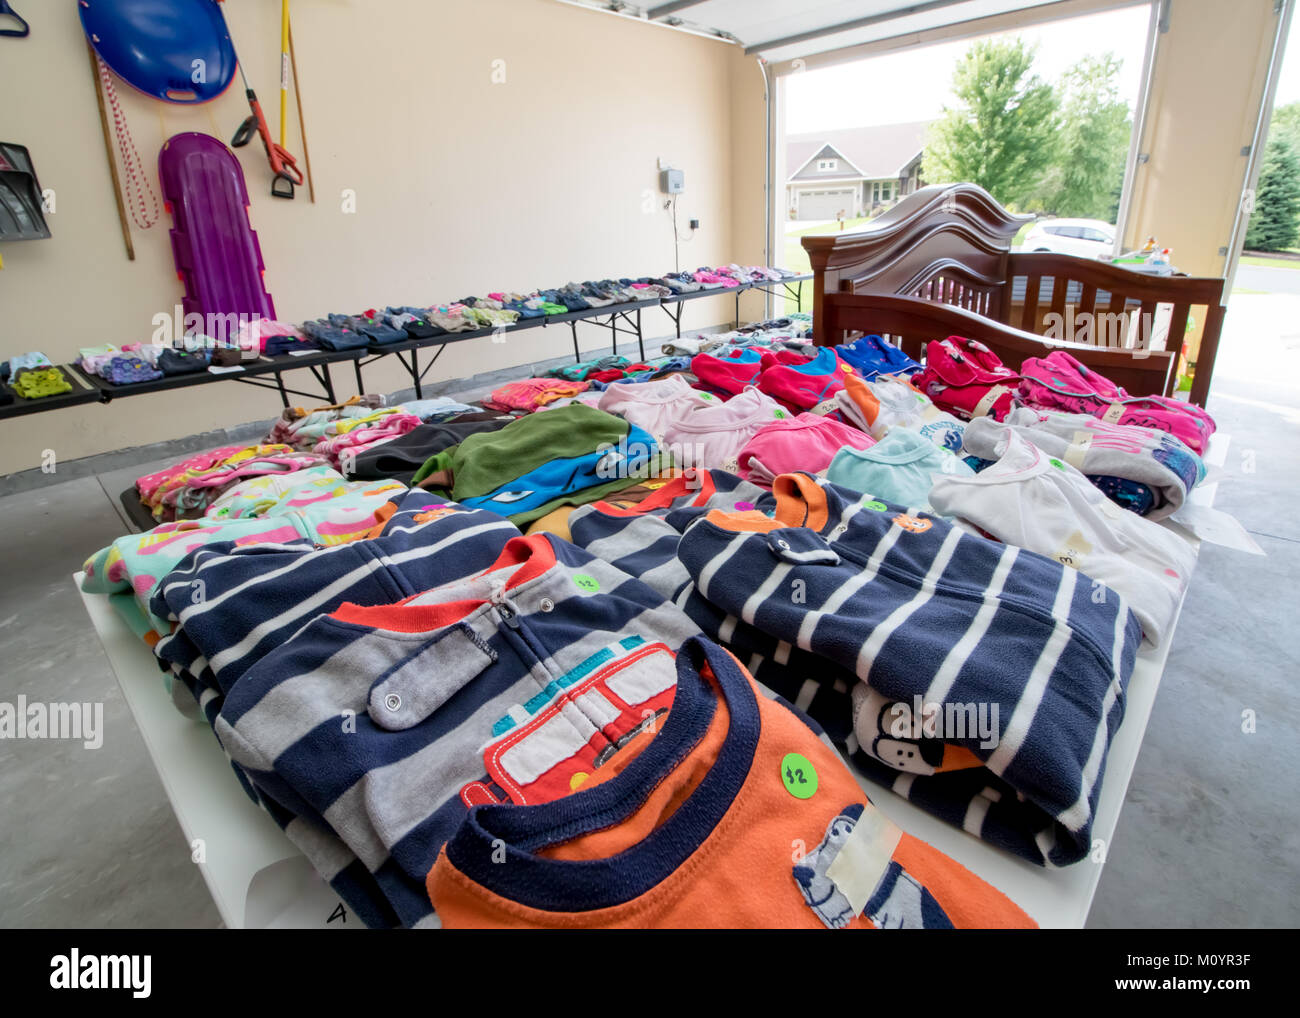 Tables full of dishes, toys, and children's clothing for sale at a typical American garage sale - Stock Image